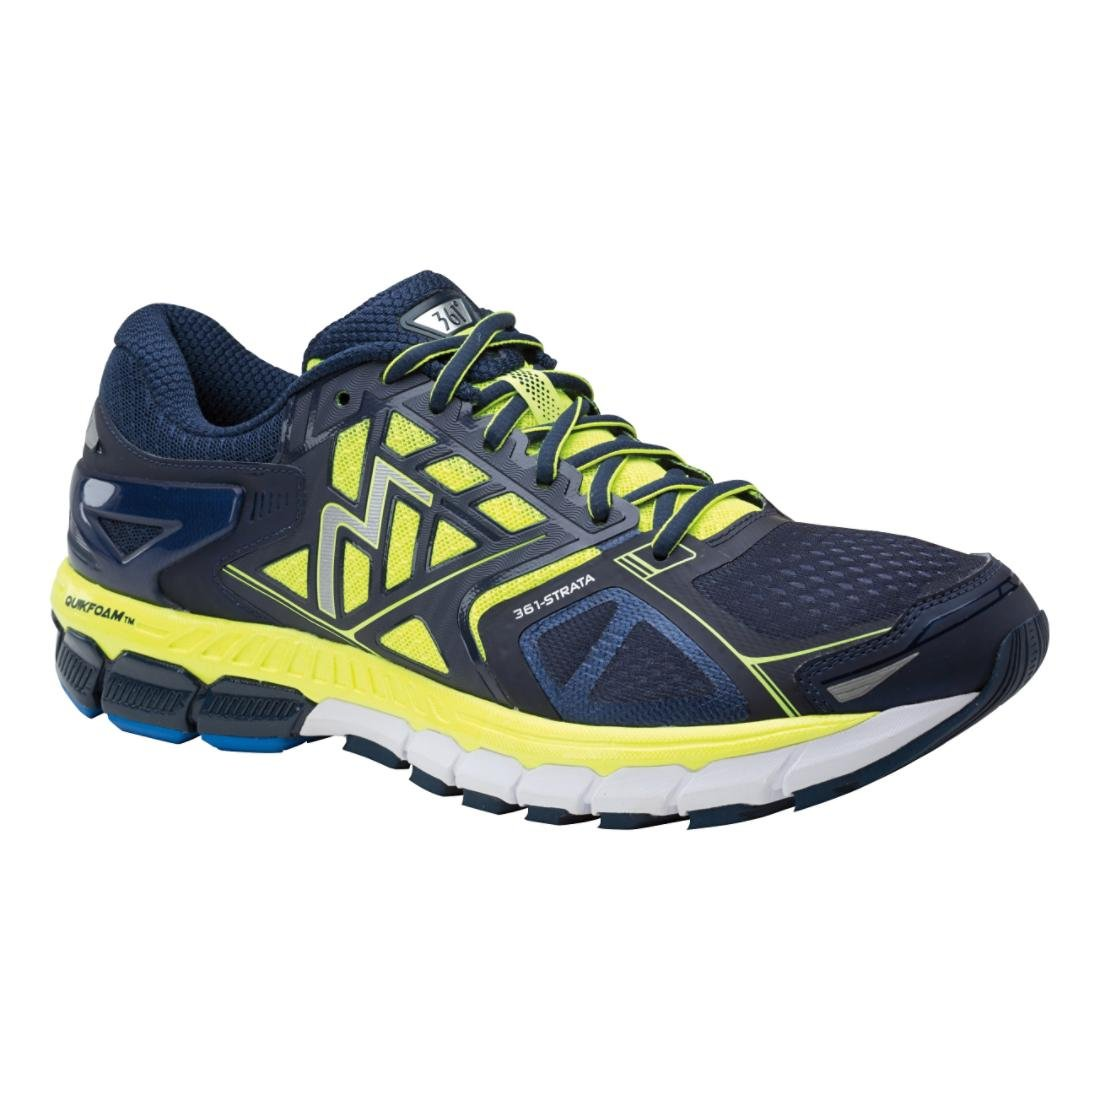 361° Men's Strata Running Shoe B01CEYU7Y8 11.5 EE US|Midnight/Spark